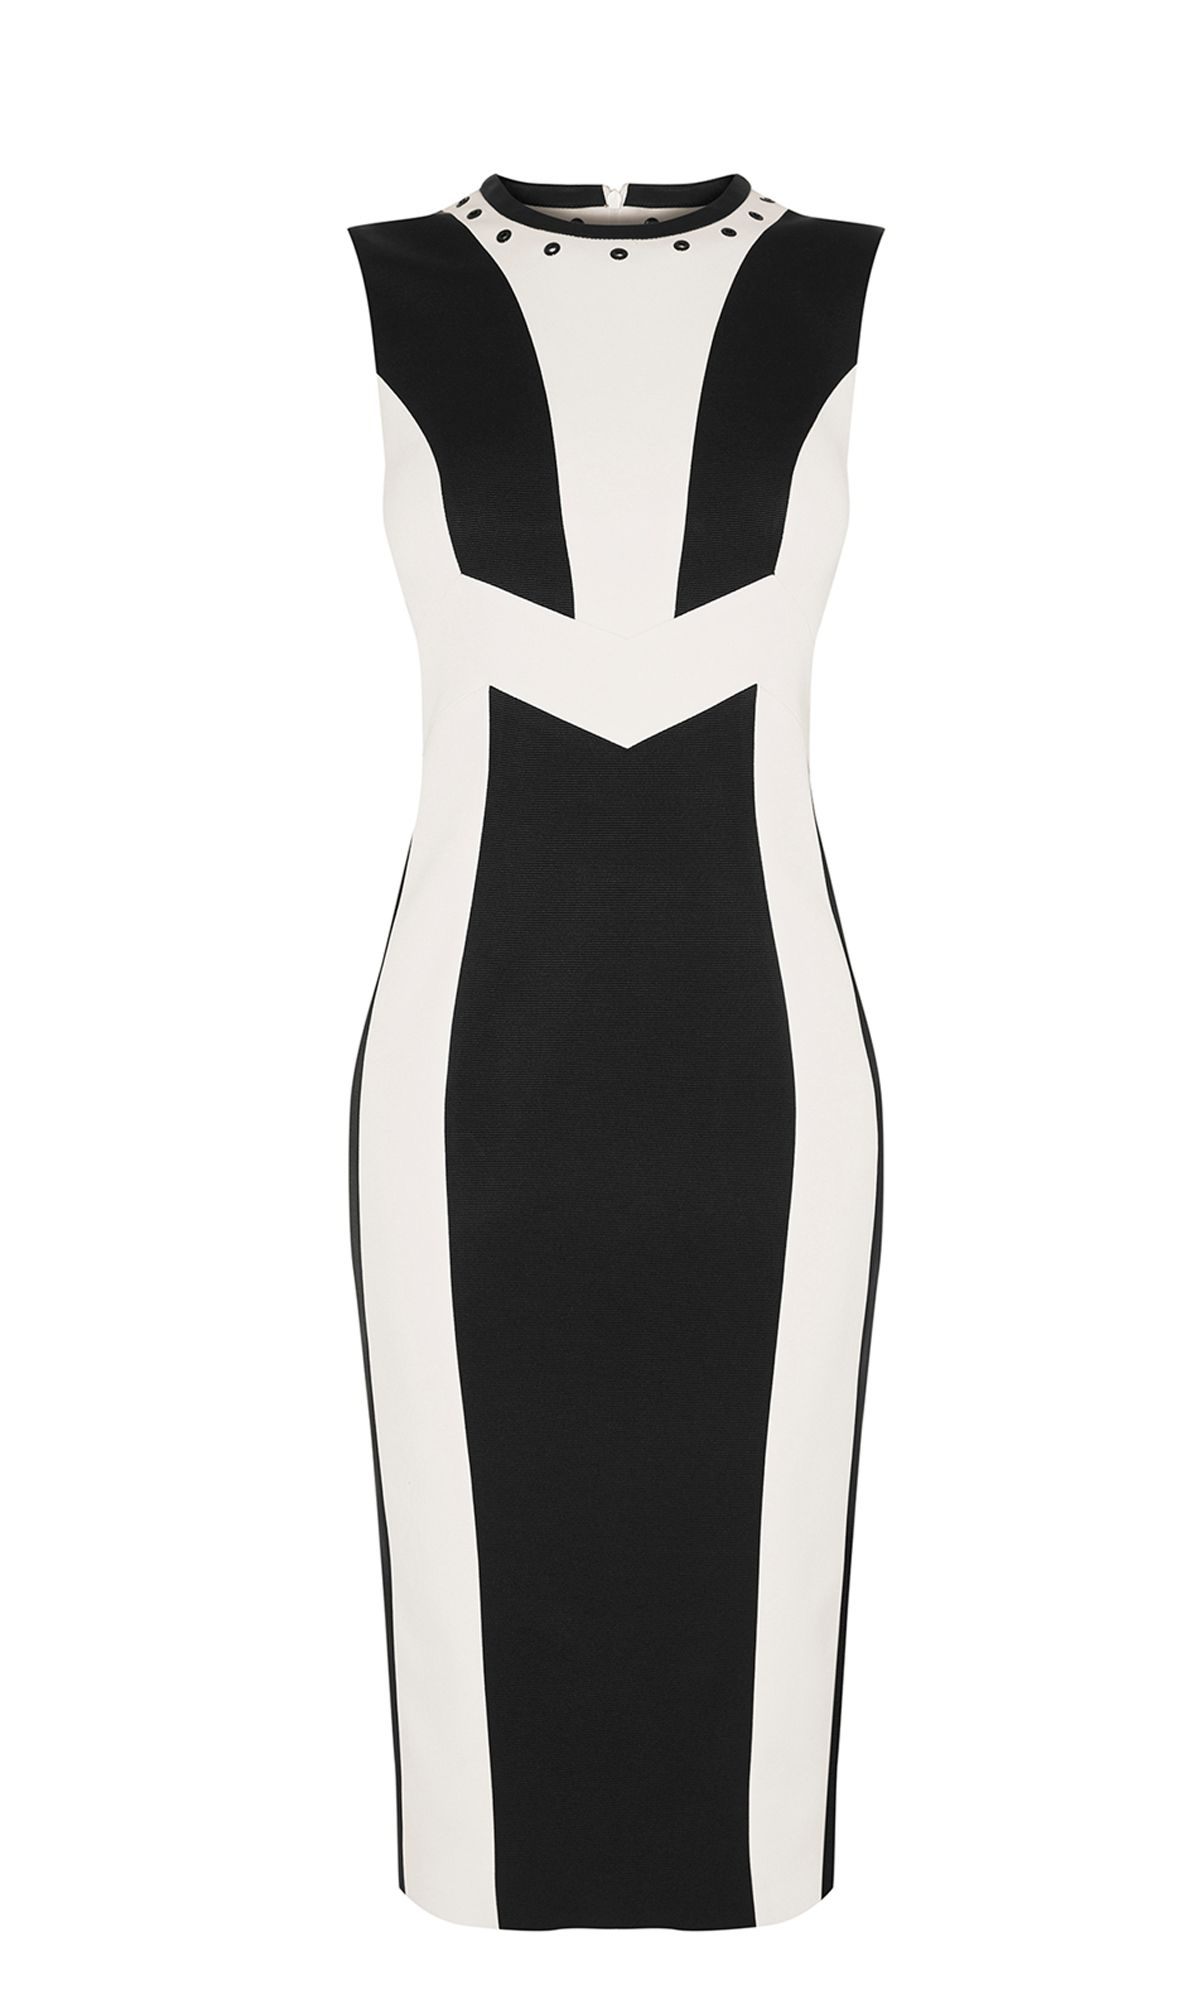 Karen Millen White Contrast Panel Dress, Black/White